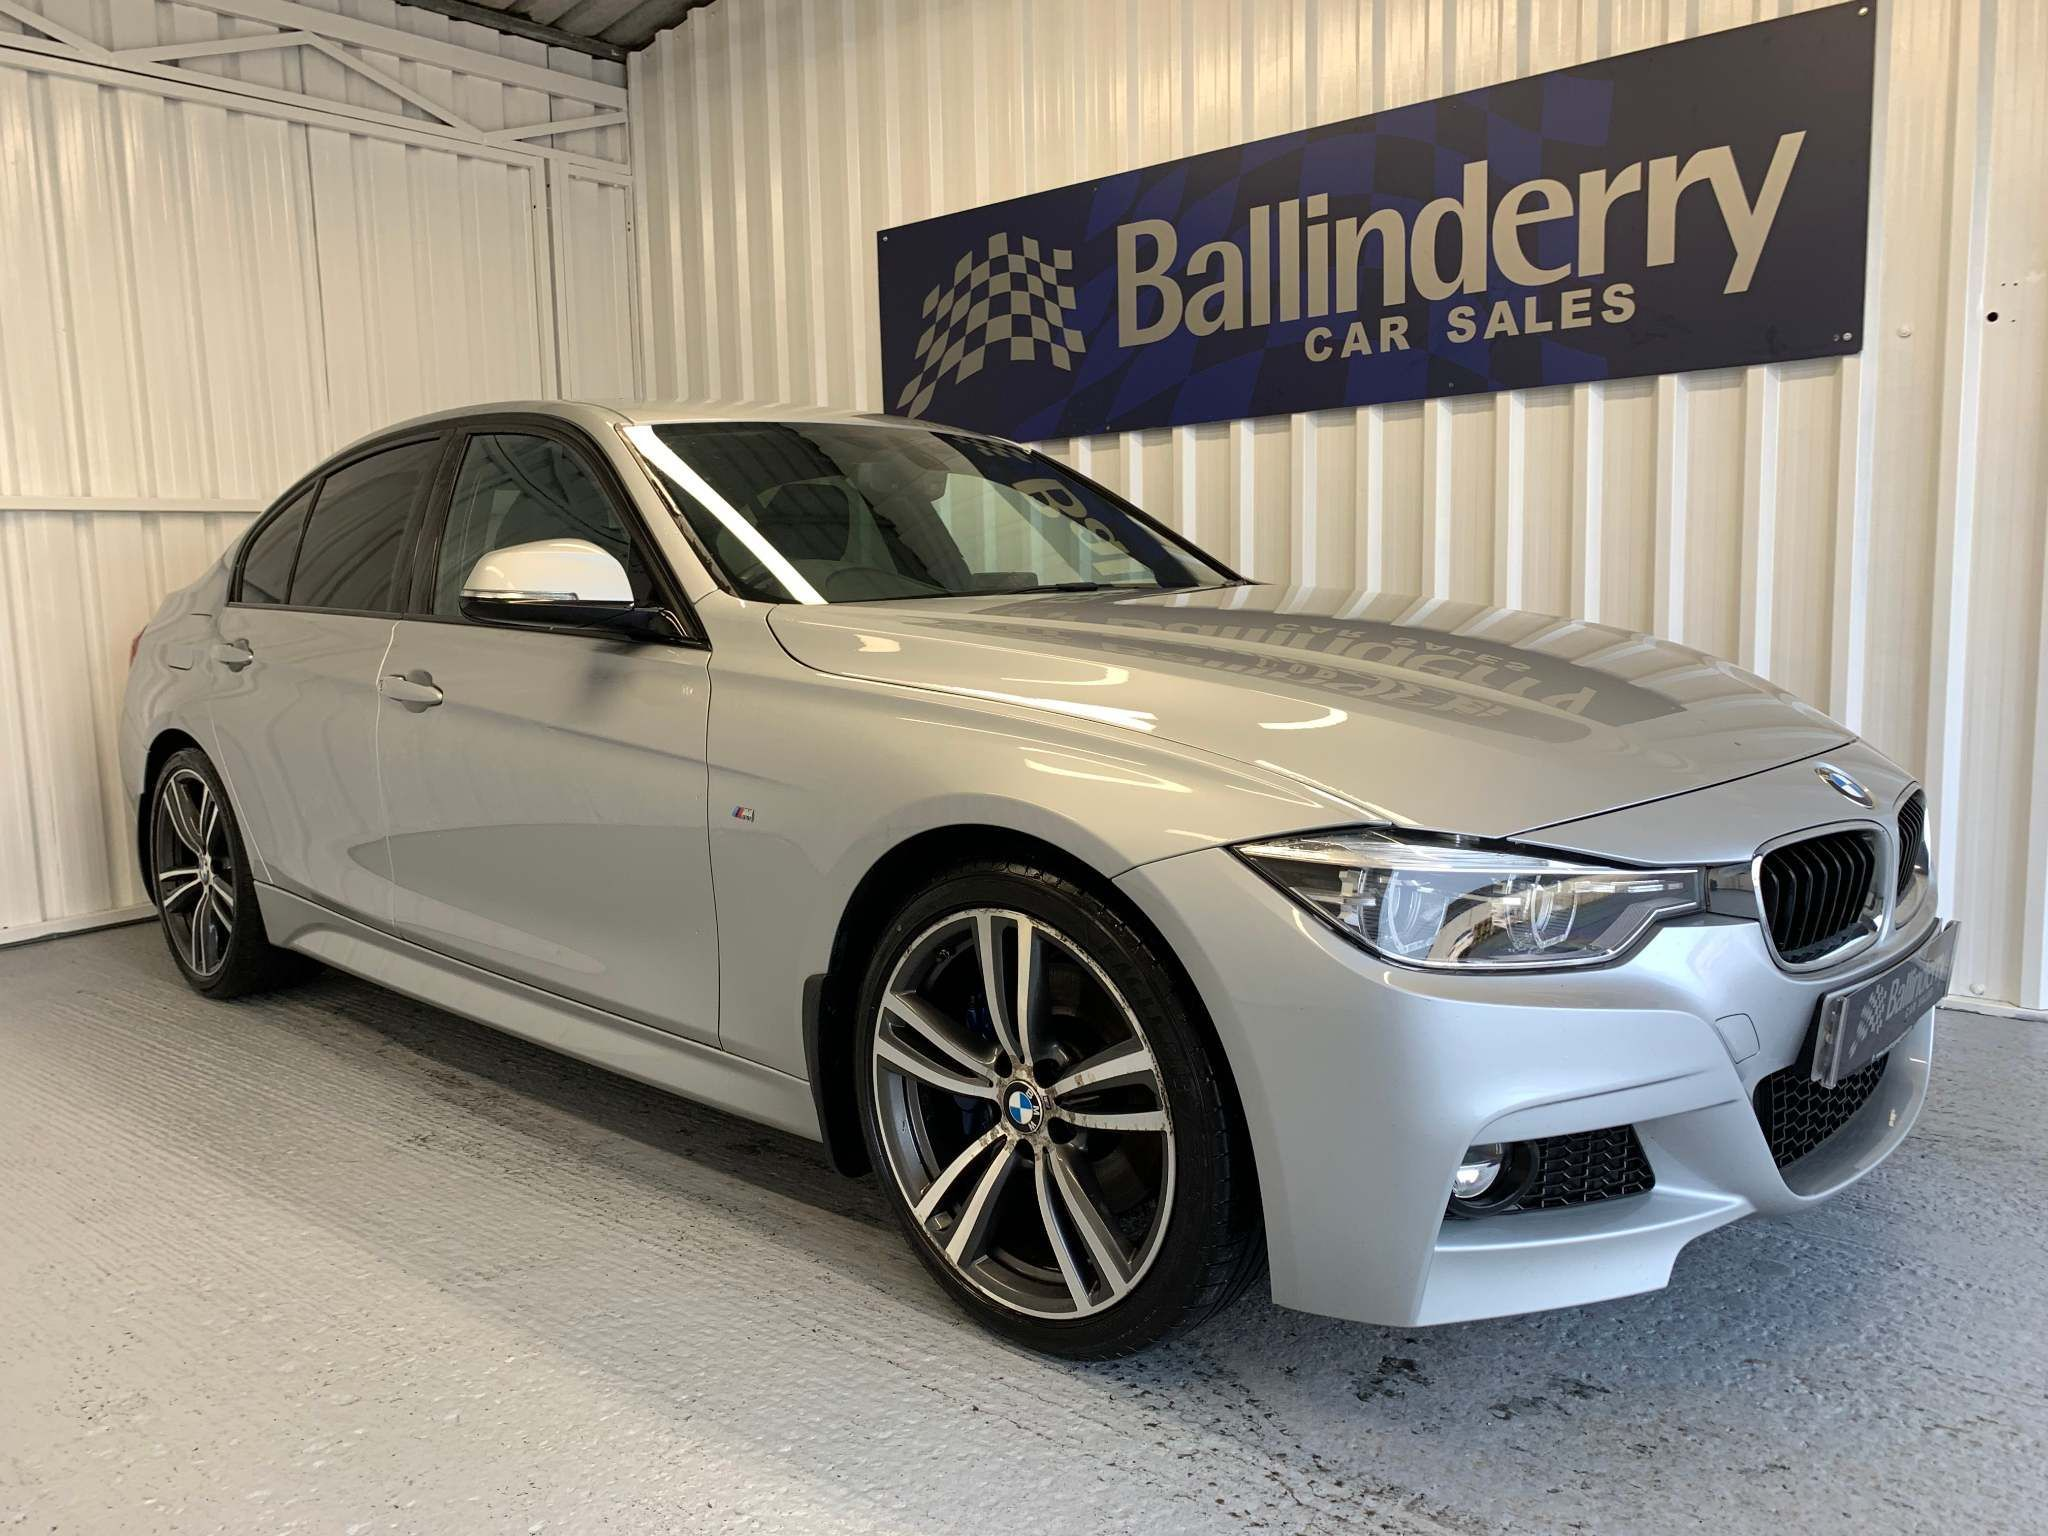 2015 BMW 3 Series 2.0 320d BluePerformance M Sport (s/s) Diesel Manual 19″ ALLOYS-SAT NAV-B/LEATHER – Ballinderry Car Sales Moira